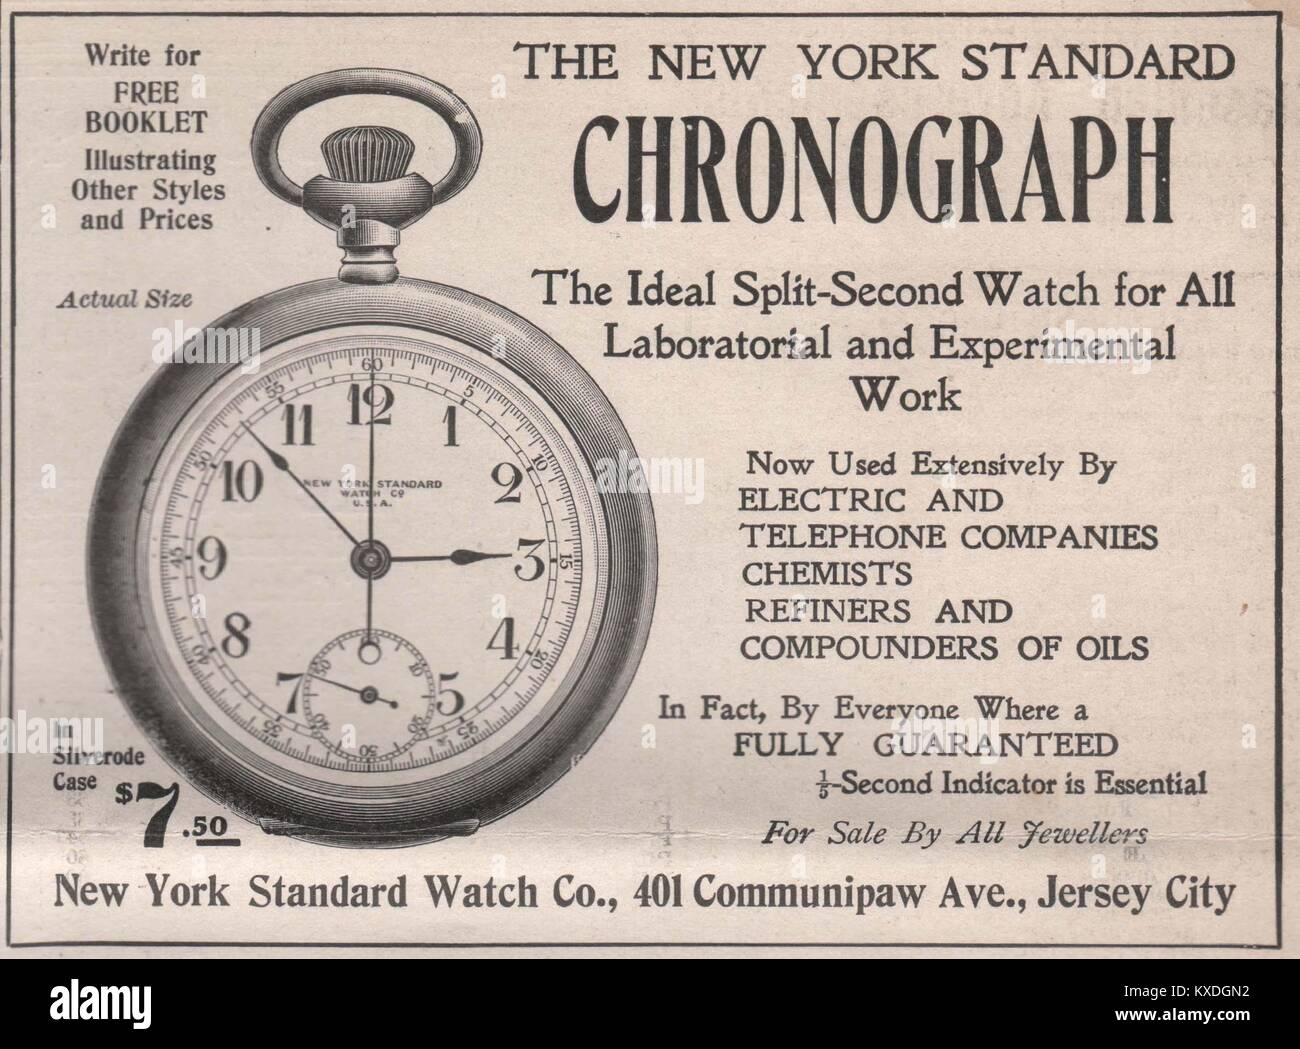 'The New York Standard Chronograph – New York Standard Watch Co, 401 Communipaw Ave., Jersey City' - Stock Image